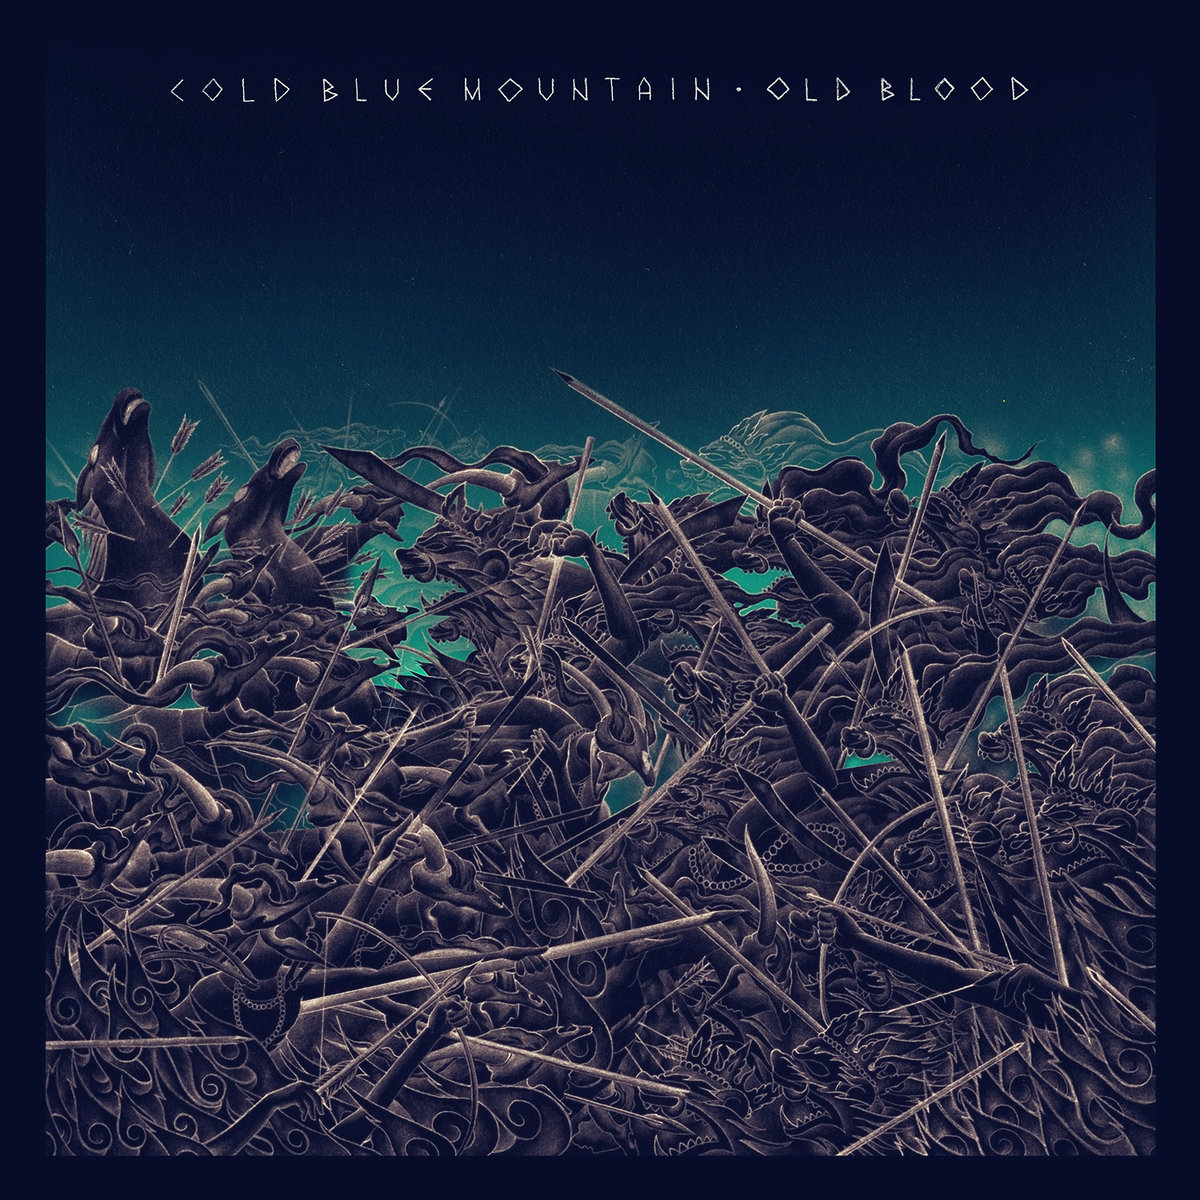 Cold Blue Mountain - Old Blood @ 'Old Blood' album (metal, crust)